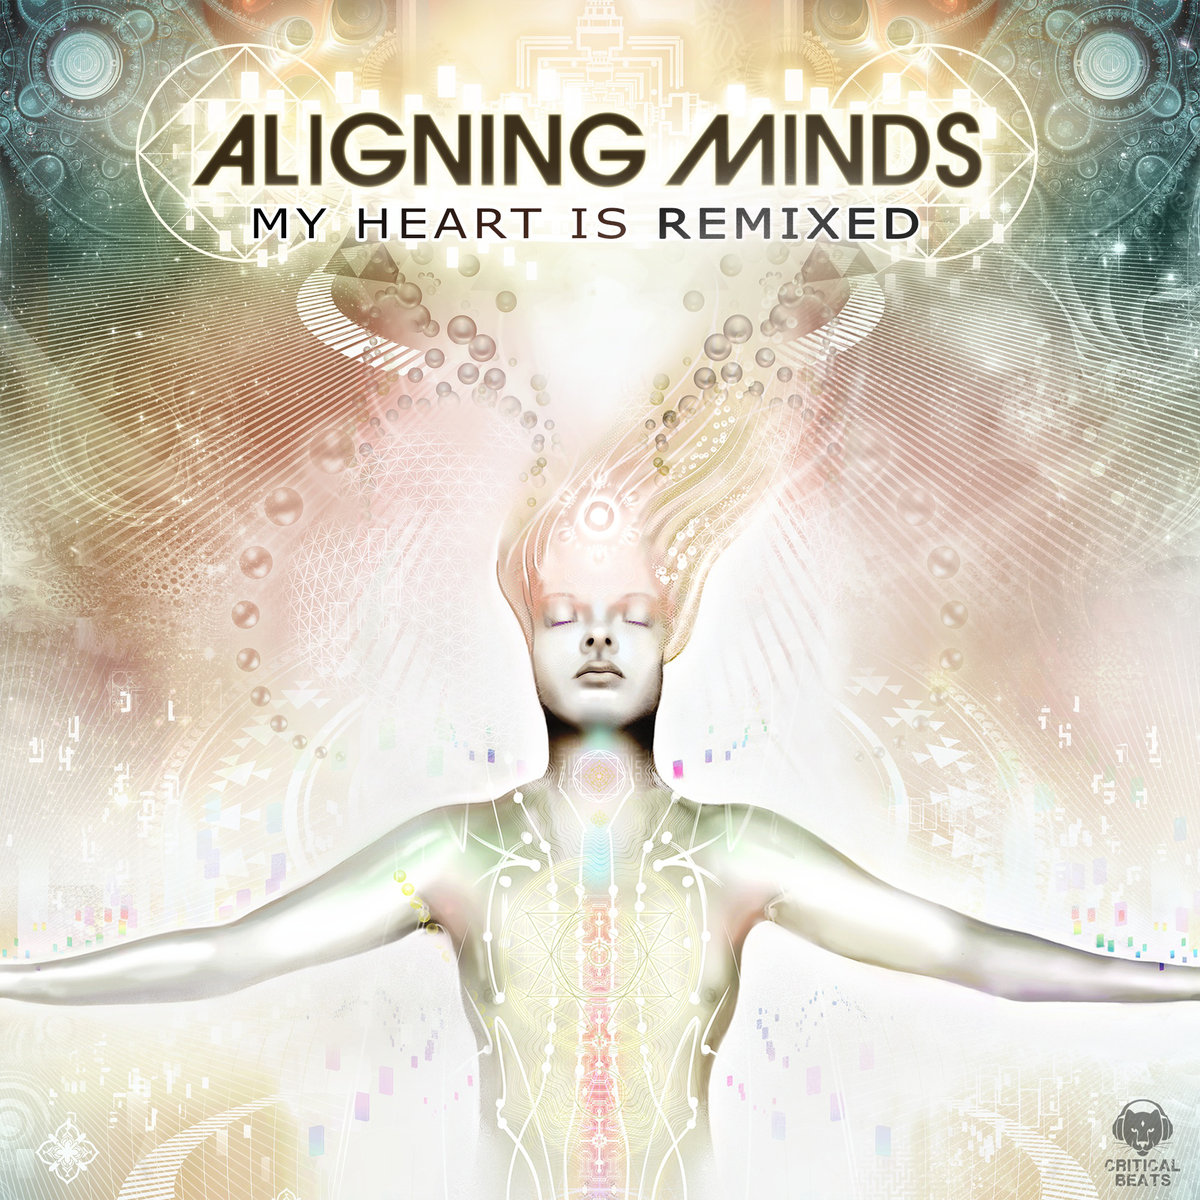 Aligning Minds - My Heart Is Love (Psymbionic Remix) @ 'My Heart Is Remixed' album (asheville, baltimore)